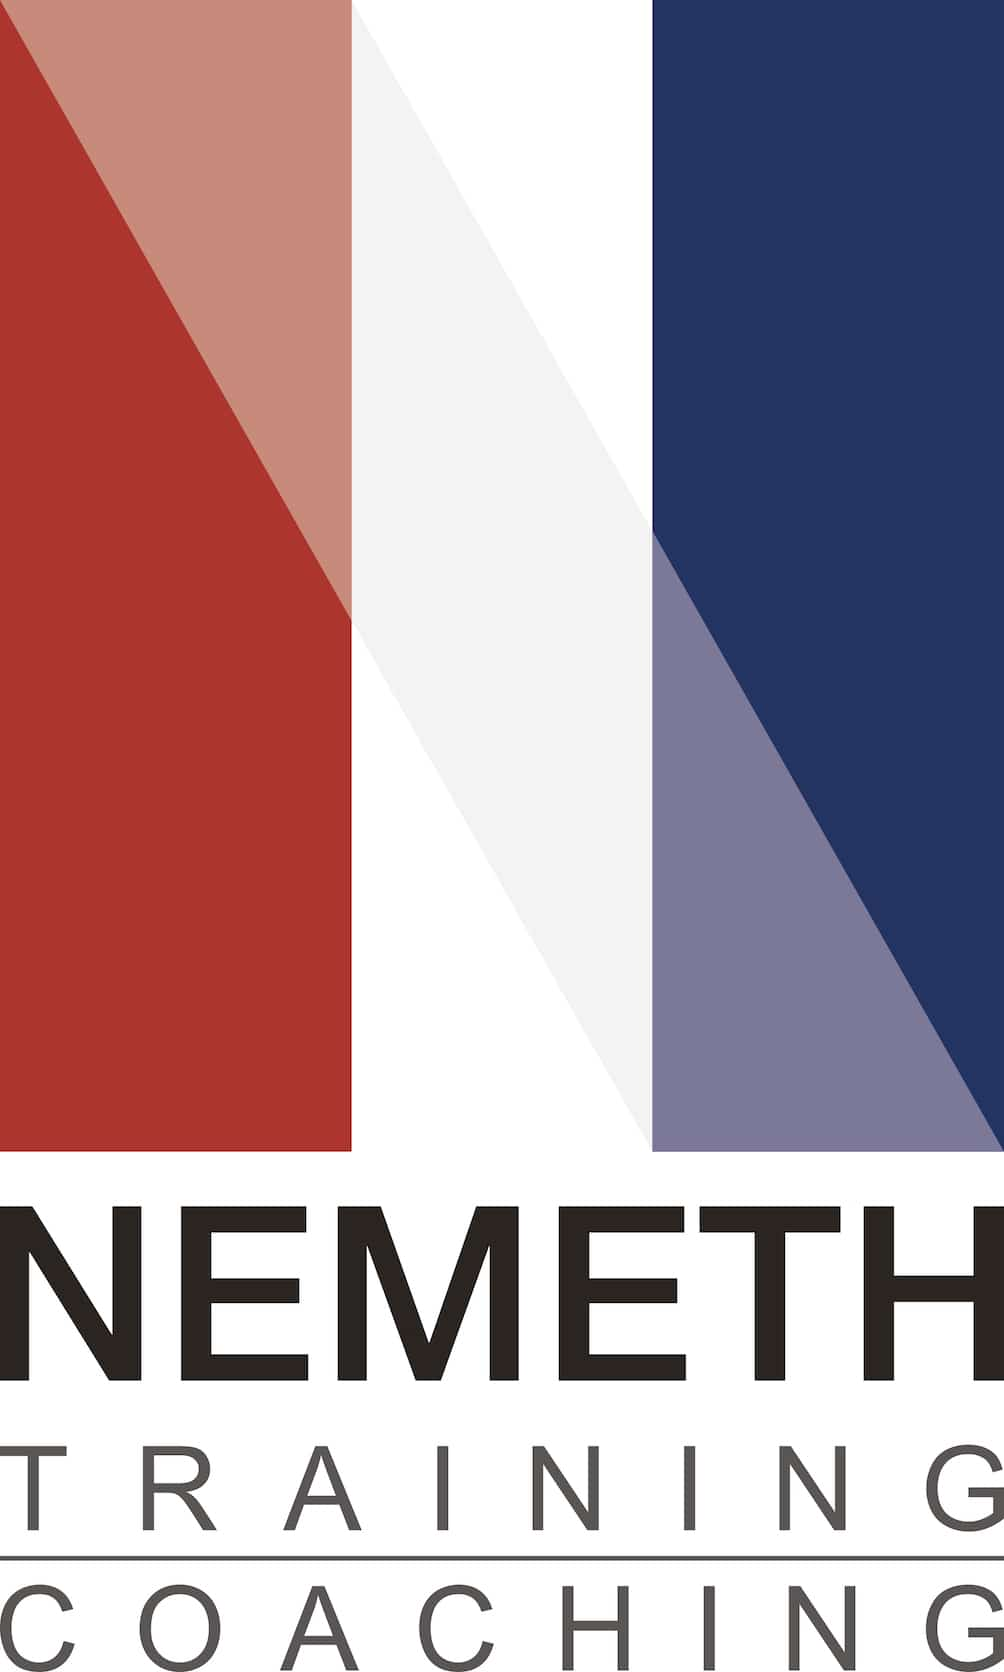 Nemeth Training+Coaching Logo